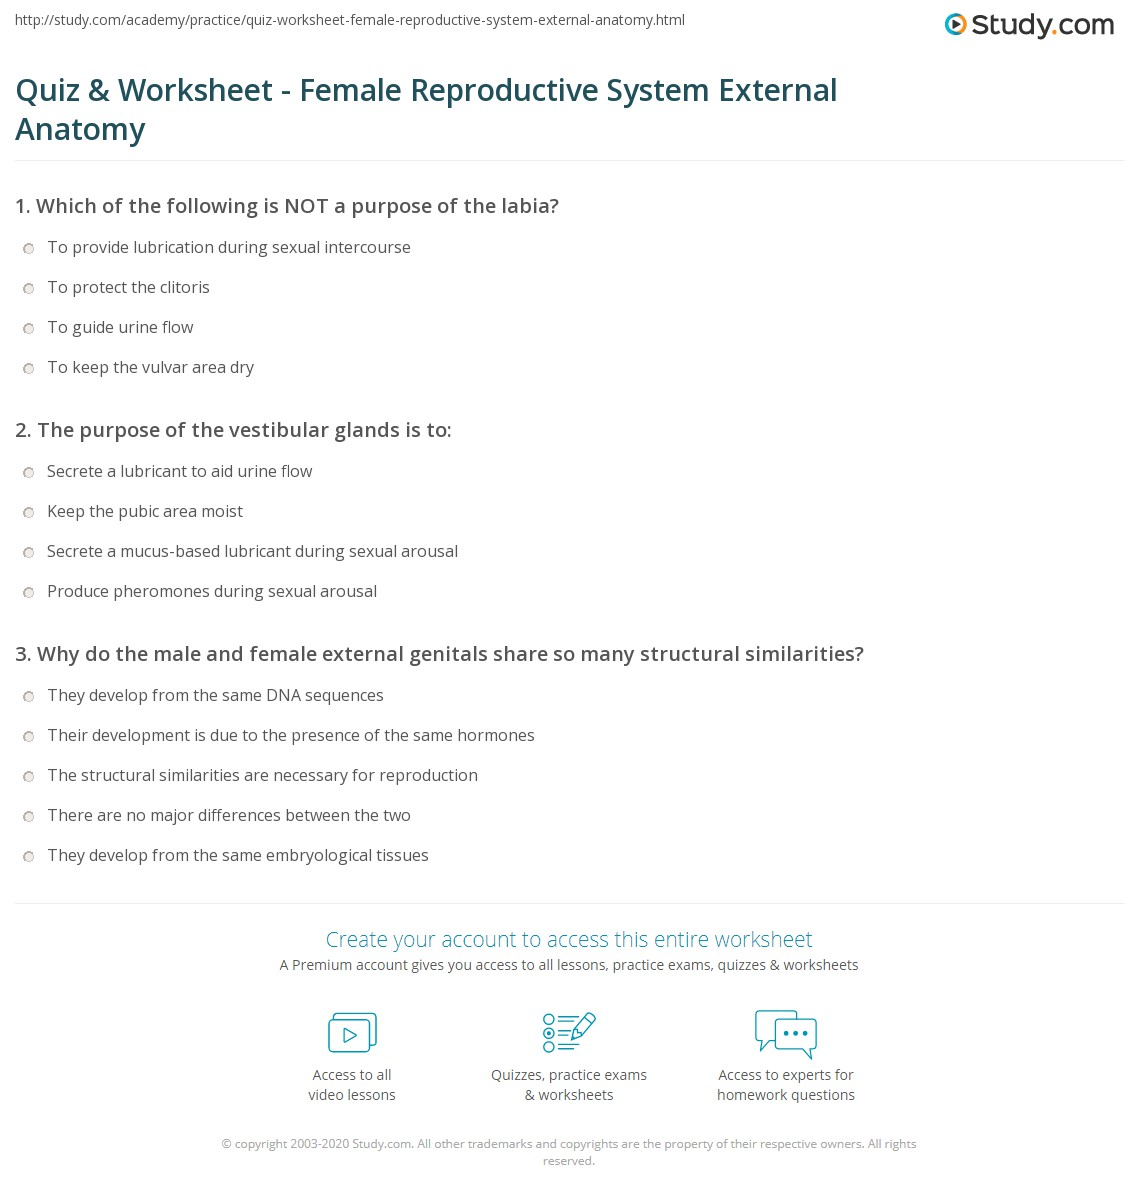 Worksheets Female Reproductive System Worksheet quiz worksheet female reproductive system external anatomy print of the worksheet